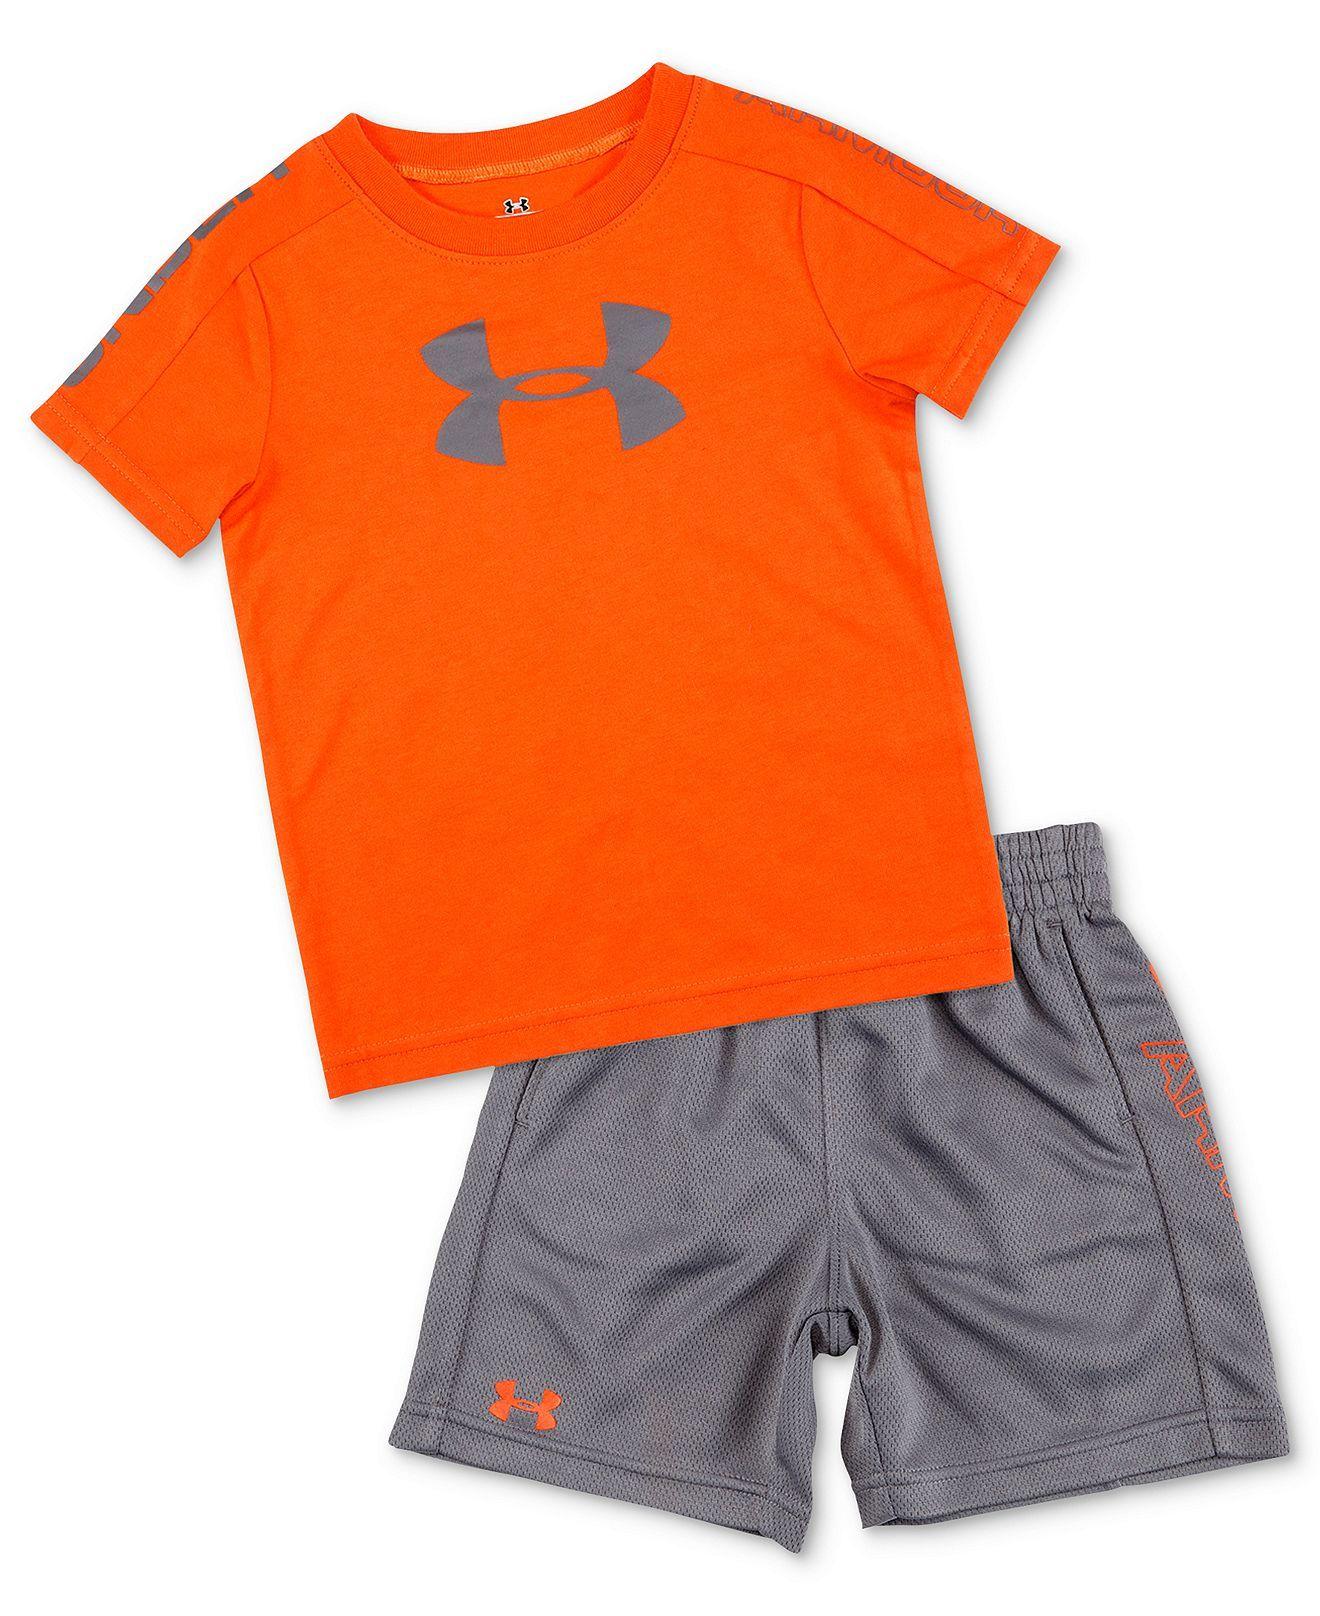 358d334870 Under Armour Baby Set, Baby Boys 2-Piece Tee and Shorts - Kids Baby ...